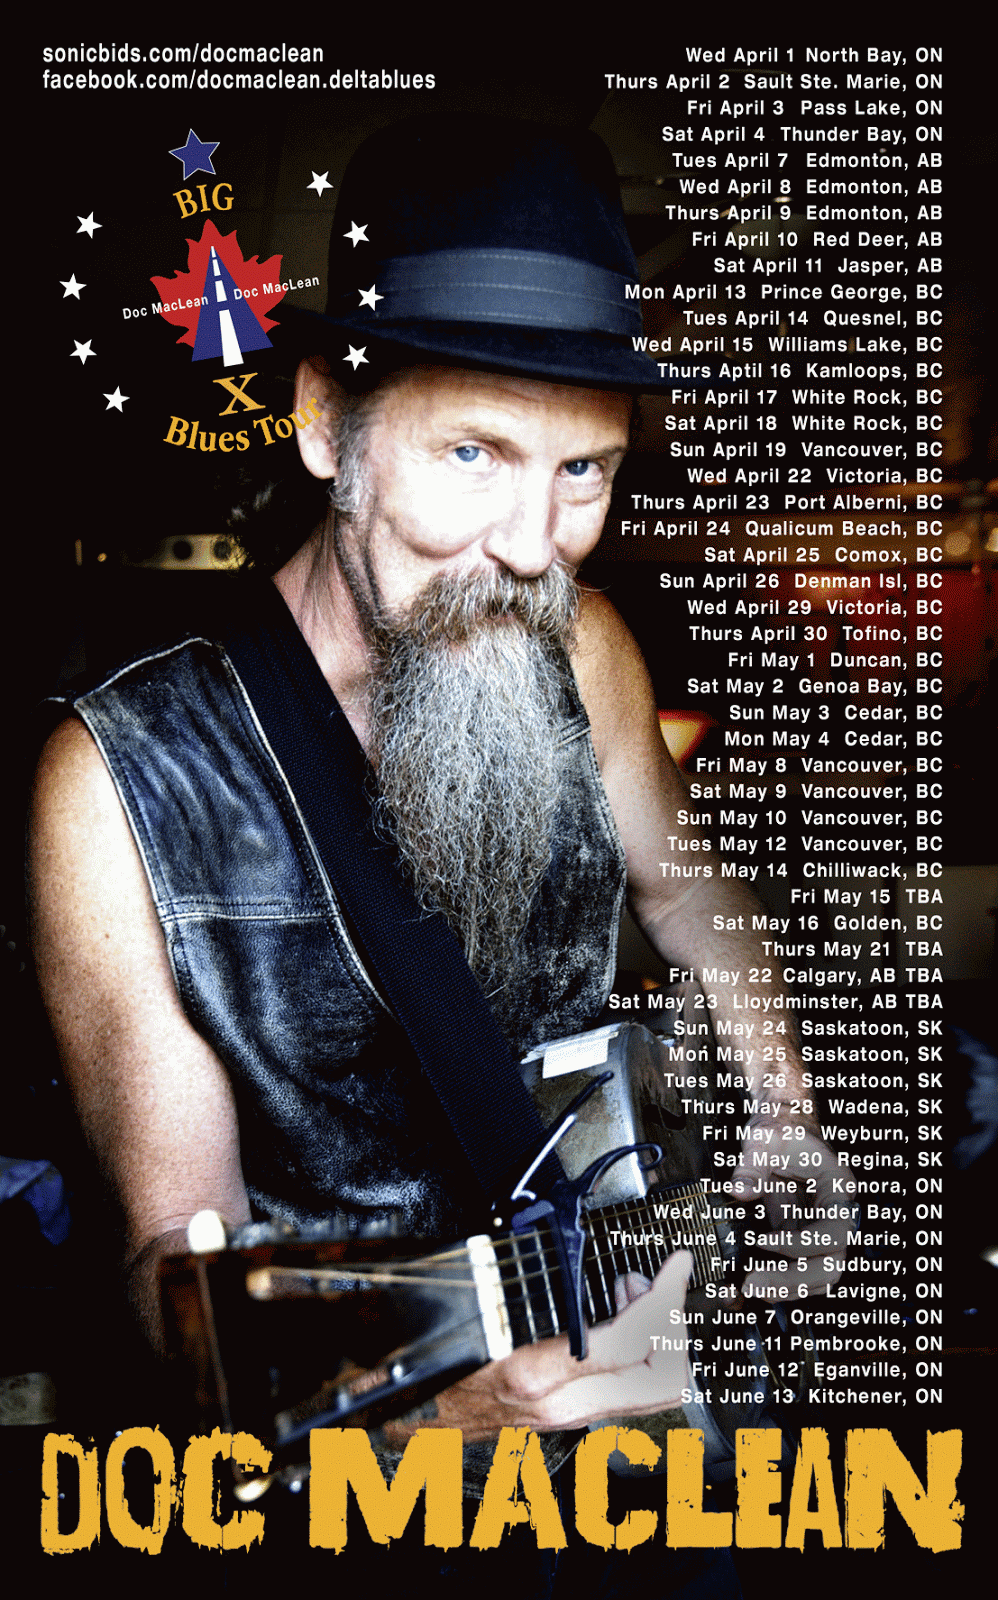 Tour Poster, western/central dates